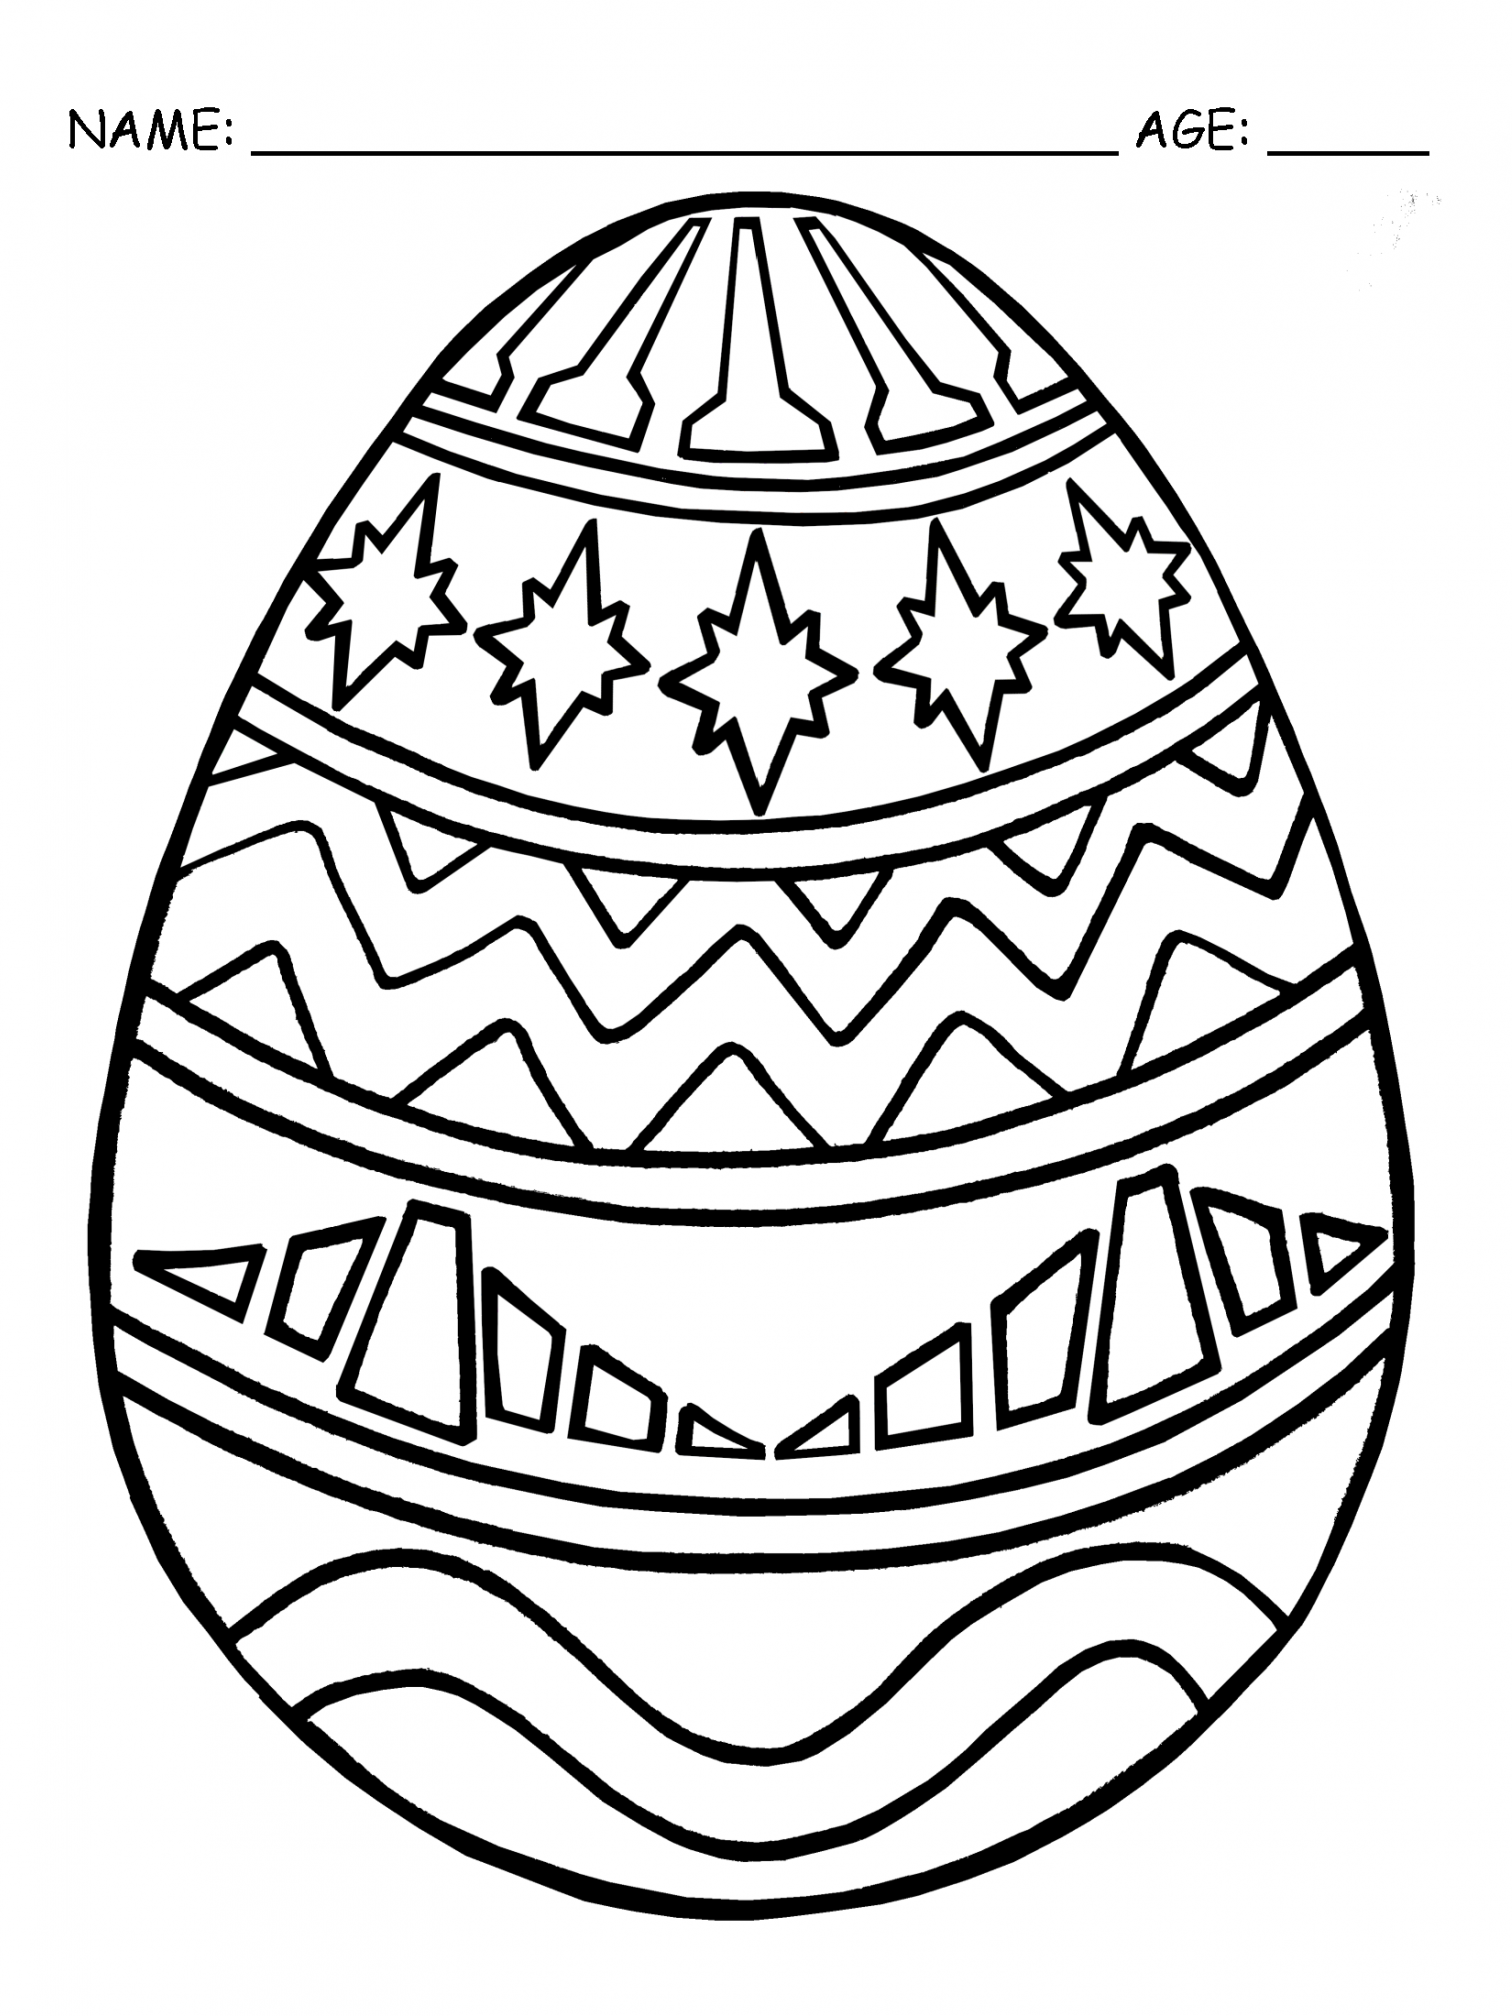 egg coloring page here39s how to join in the great wheeling easter egg hunt coloring egg page